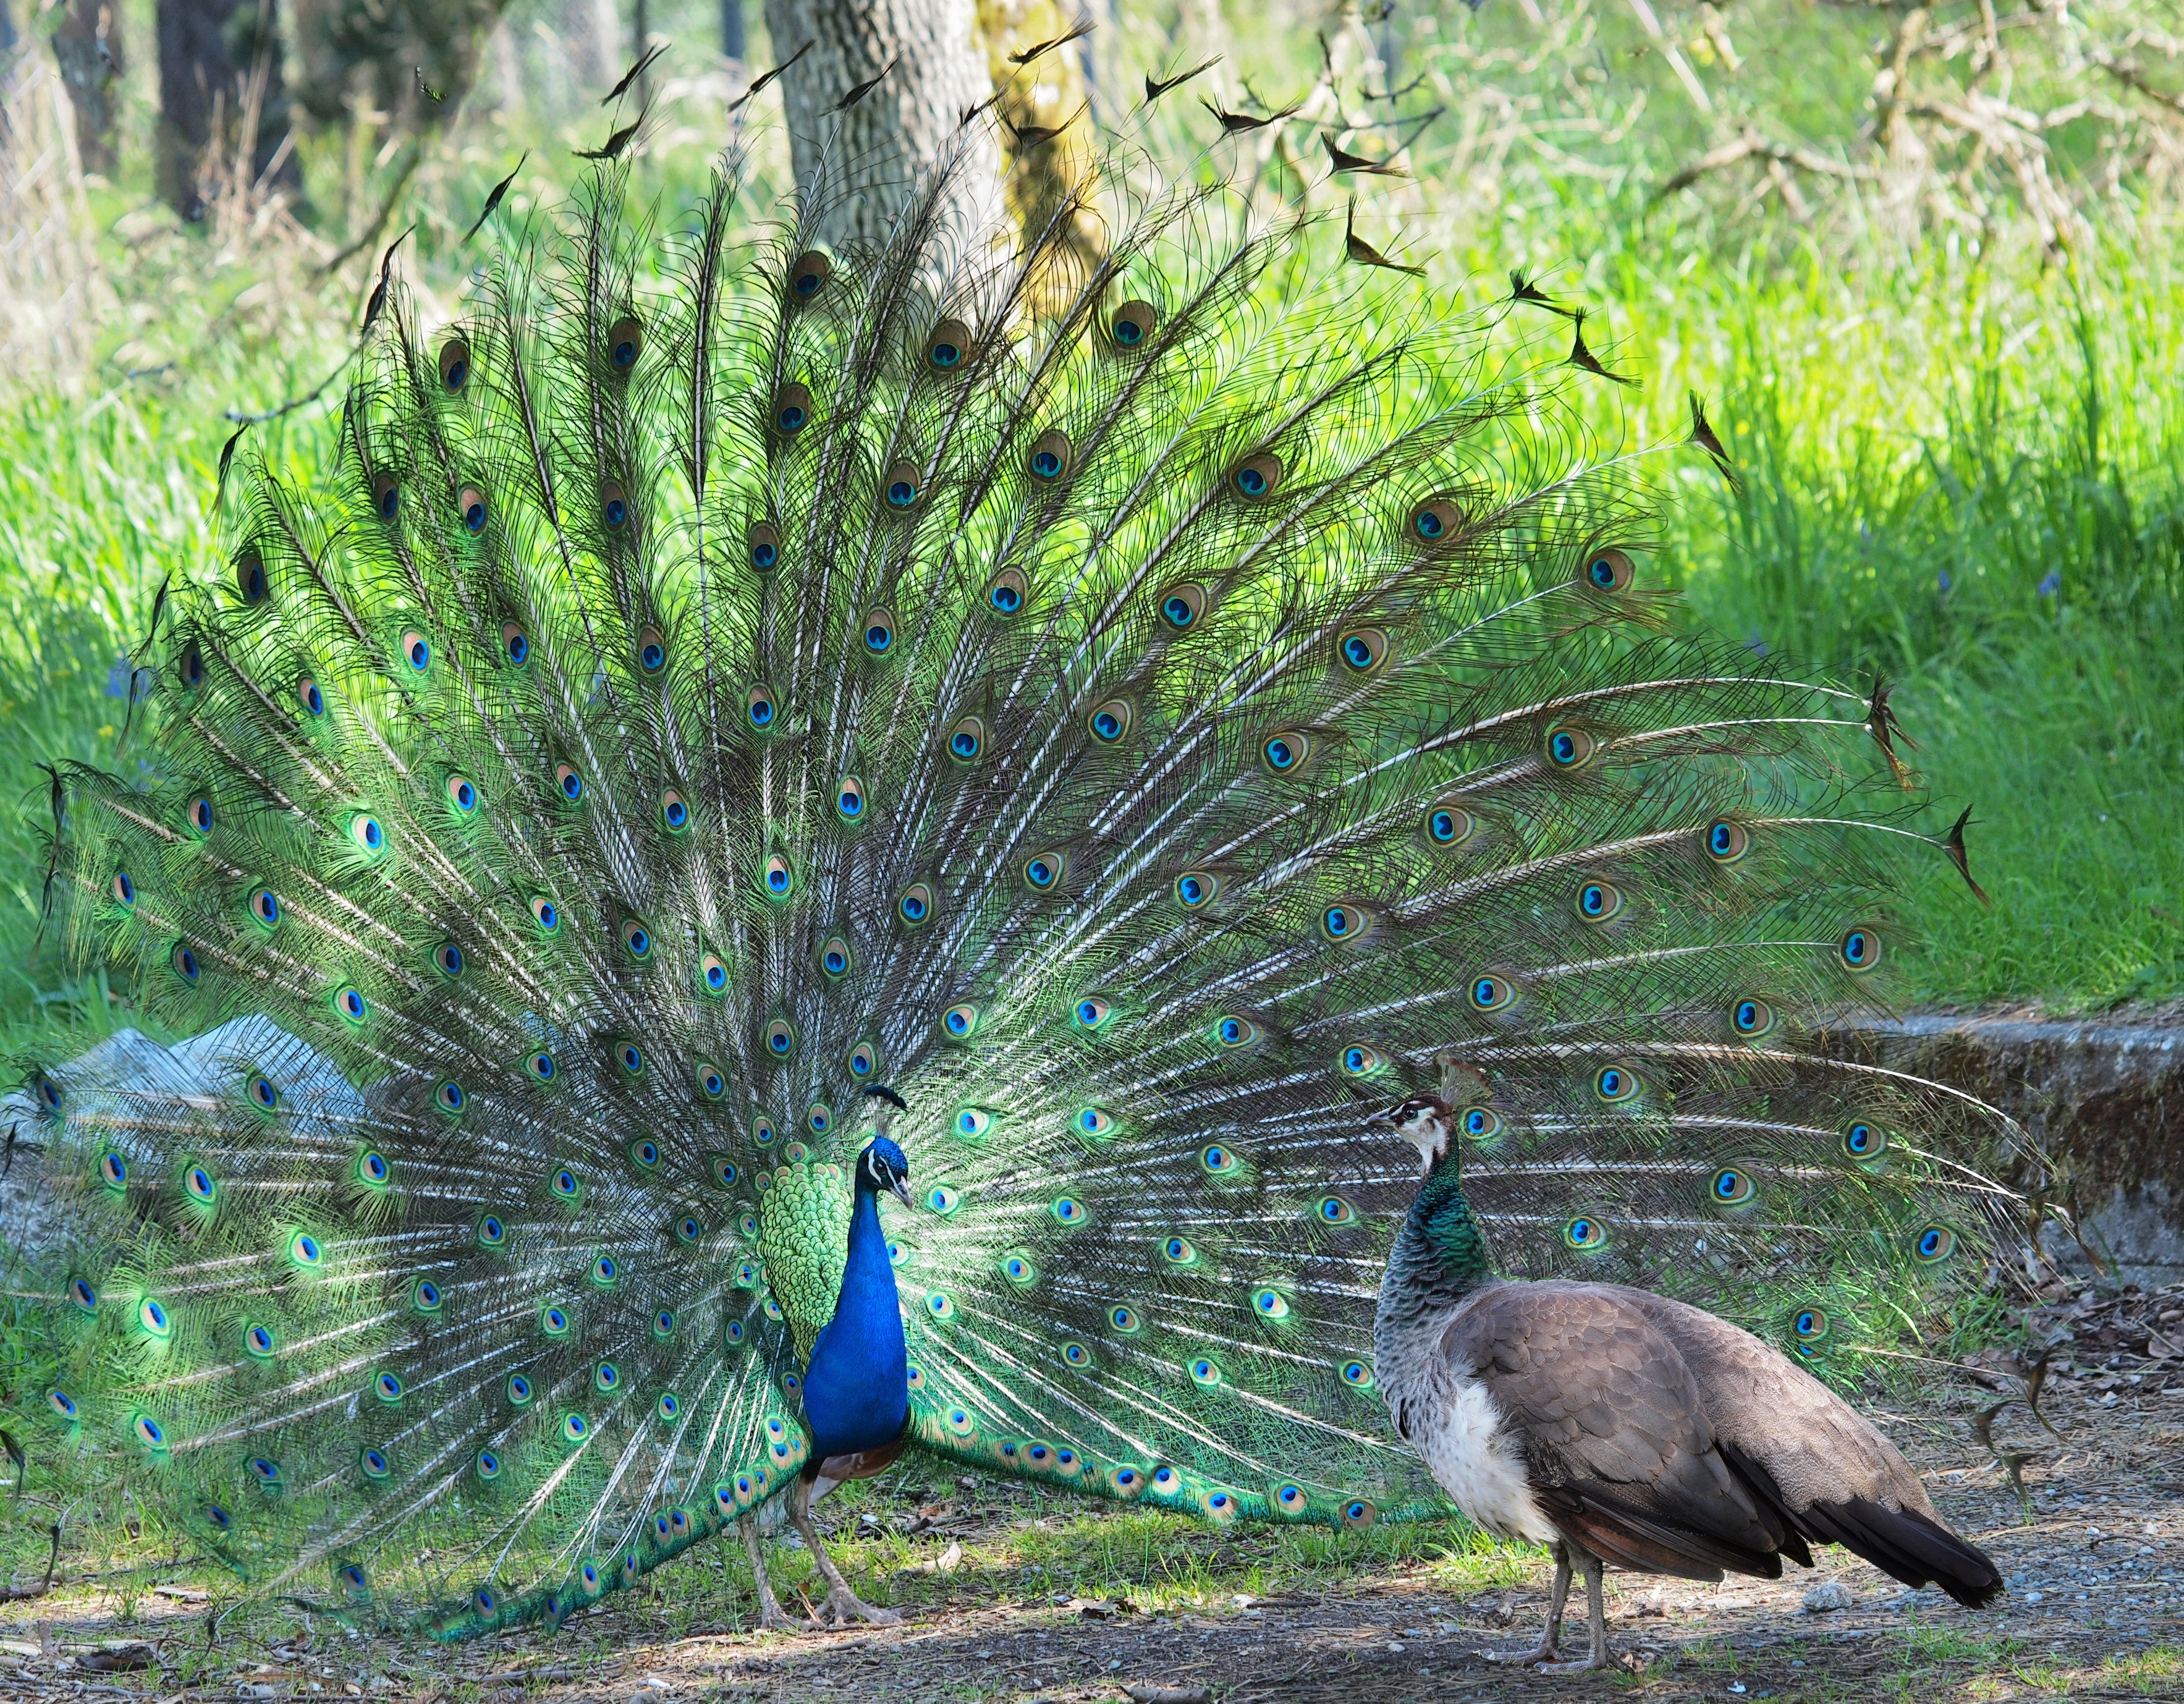 Peacock courting ritual, peahen looks at male. Reproduction takes place after attraction between the partners.